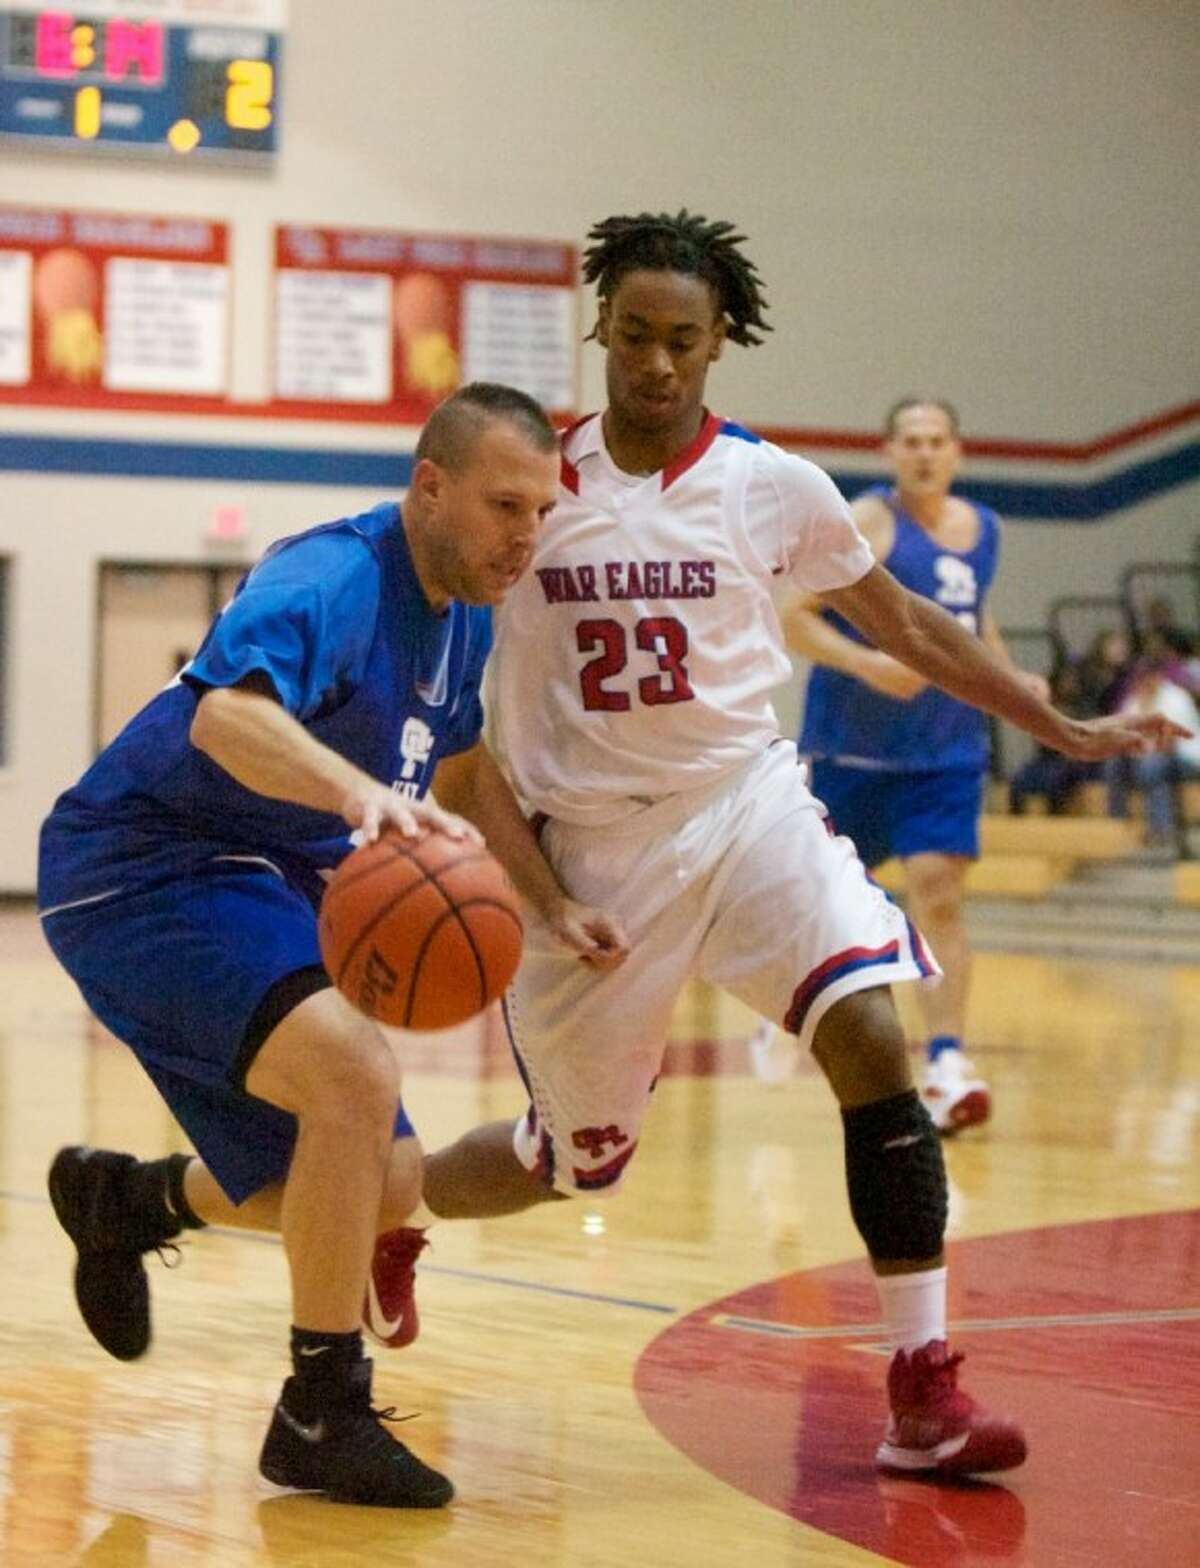 Alum Todd Lembrich dribbles against Oak Ridge's Trumaine Jefferson during Friday night's game at Oak Ridge High School. Oak Ridge High School varsity basketball team alumni from previous years returned to play against this years current varsity team.